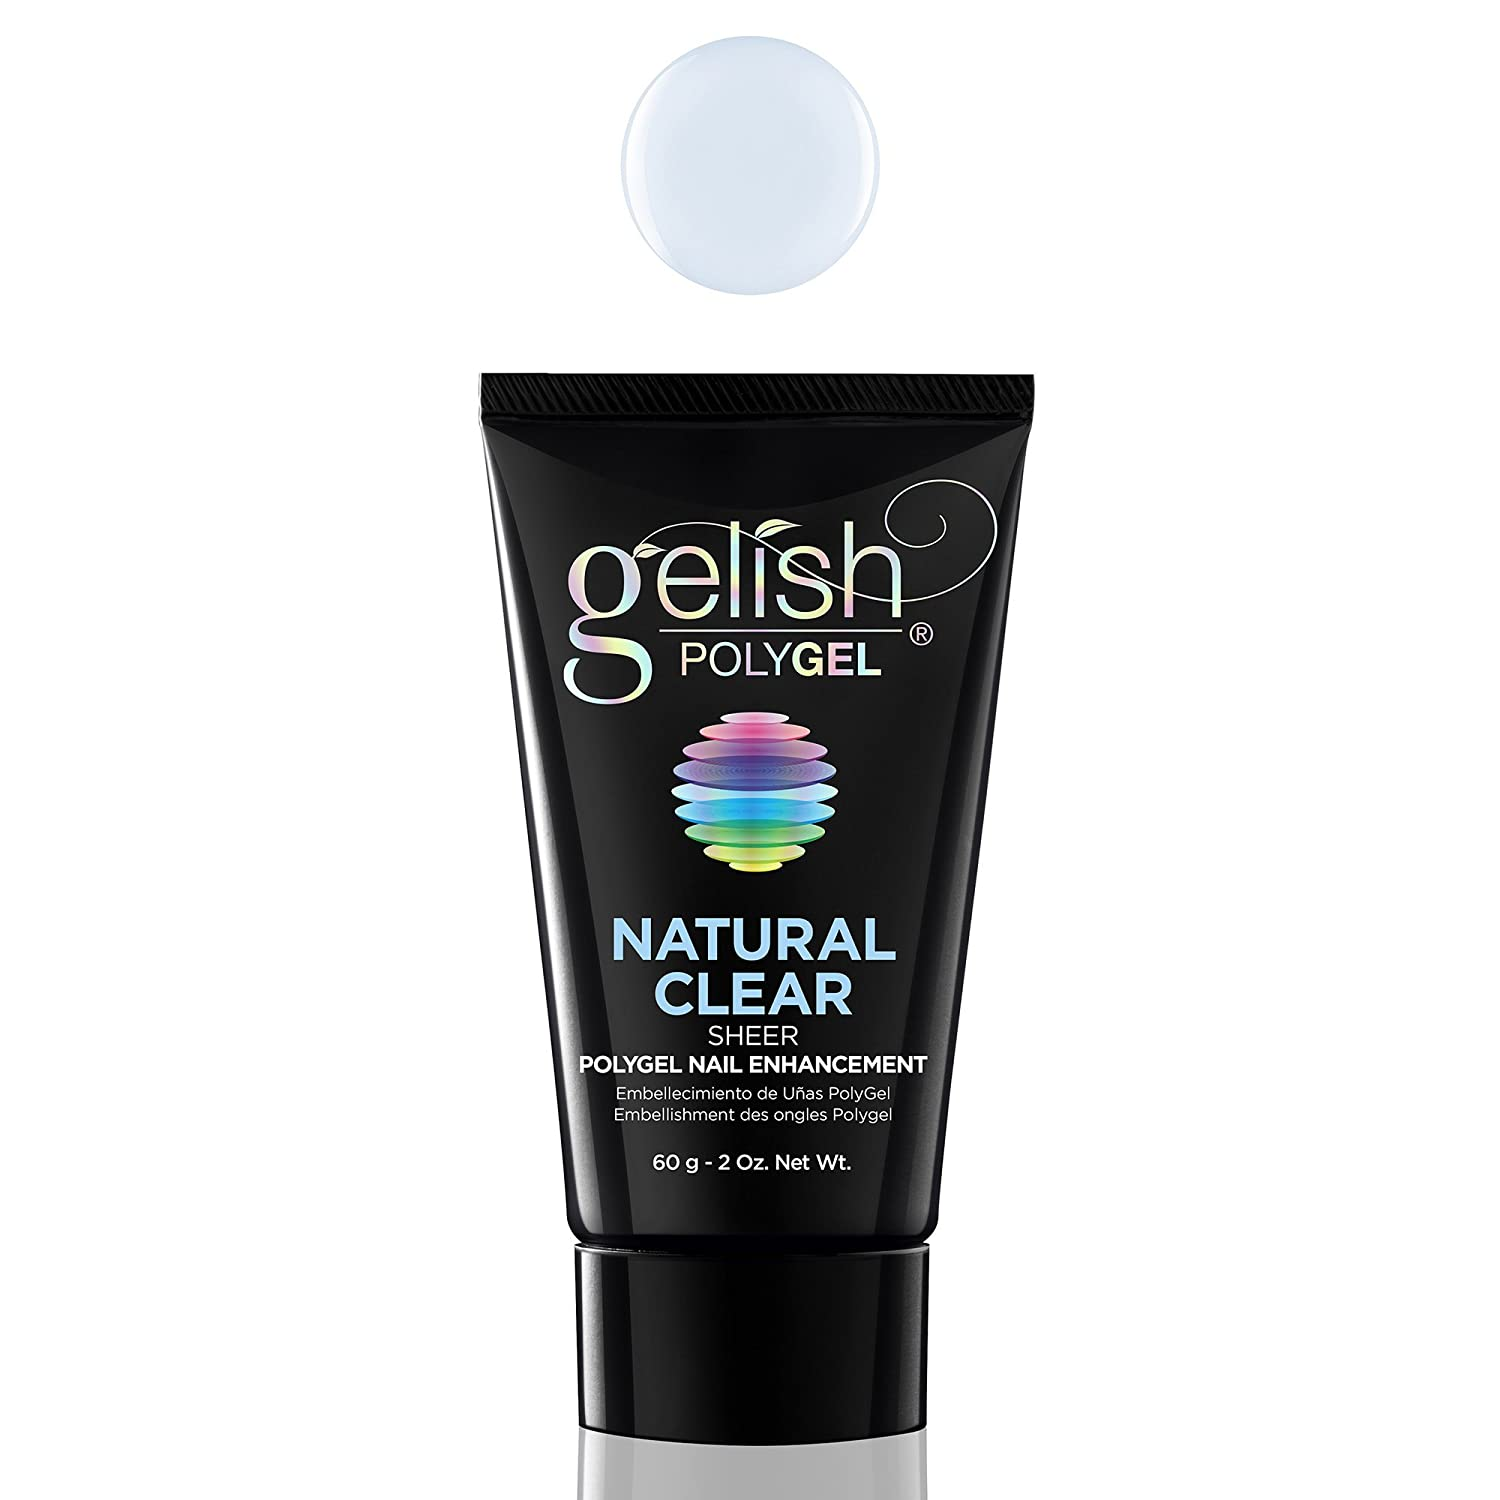 Amazon.com: Gelish PolyGel Nail Enhancement Natural Clear Sheer ...